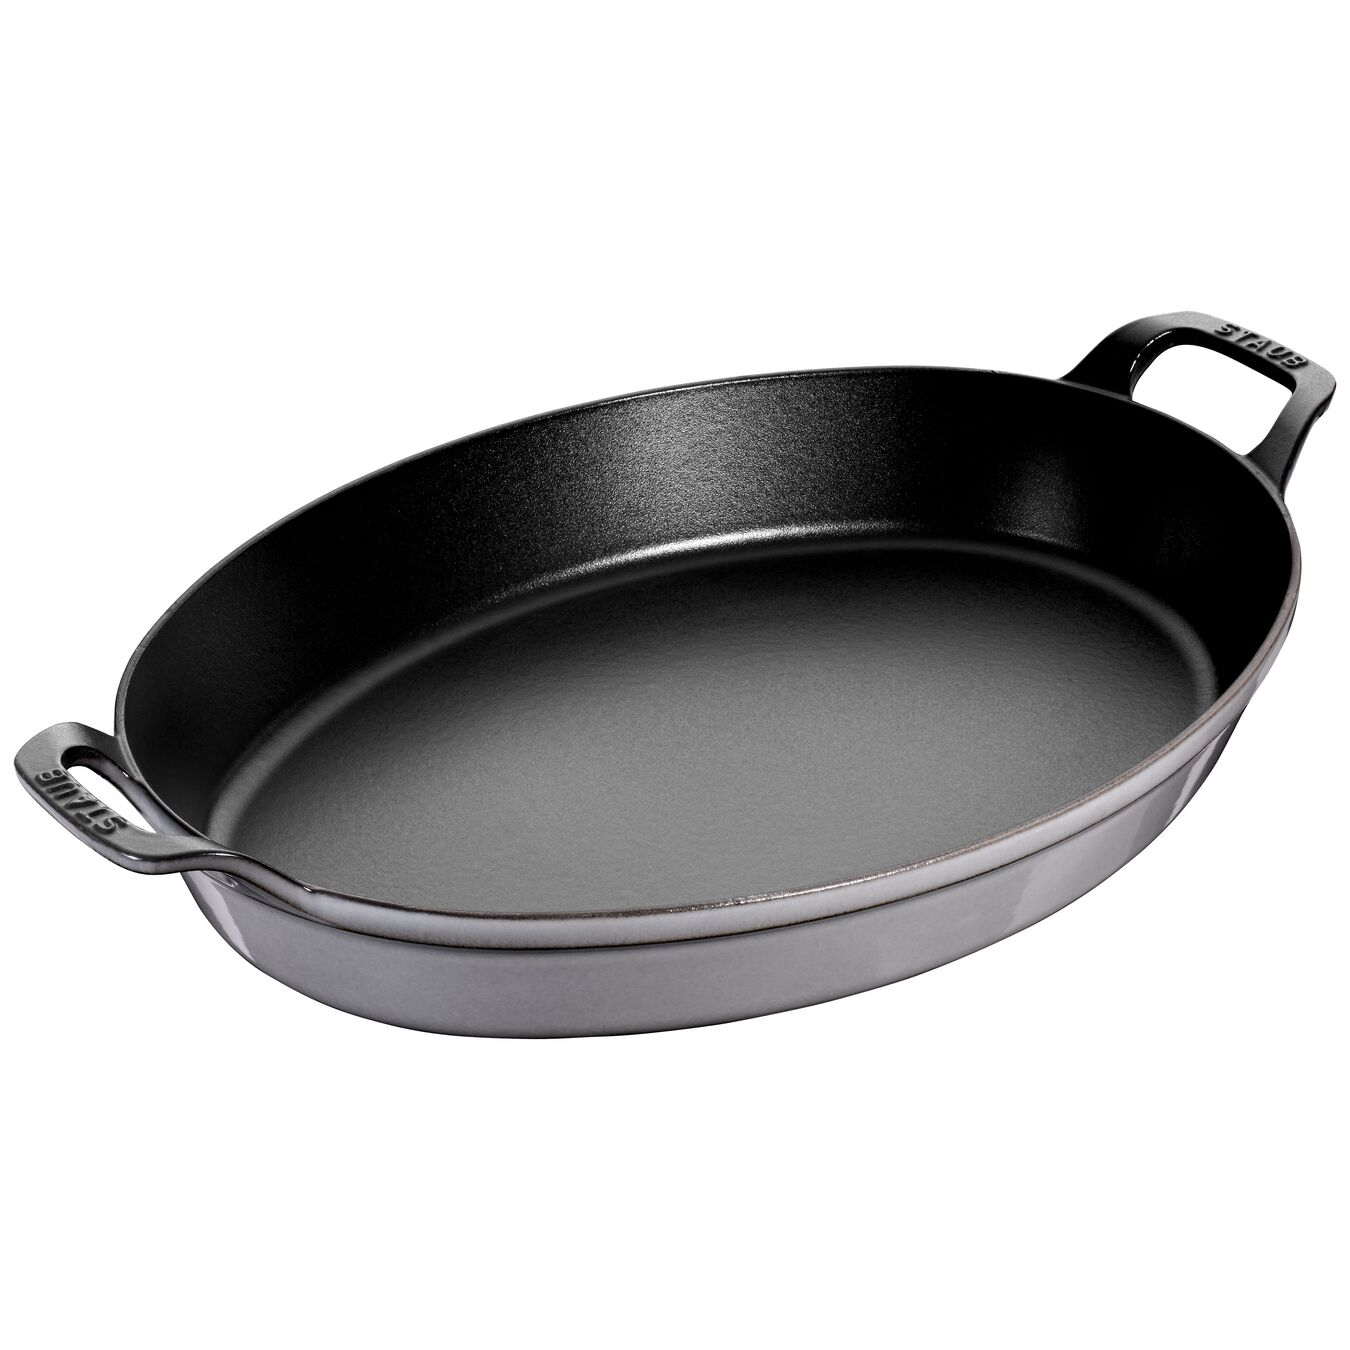 14.5-inch, oval, Oven dish, graphite grey,,large 1